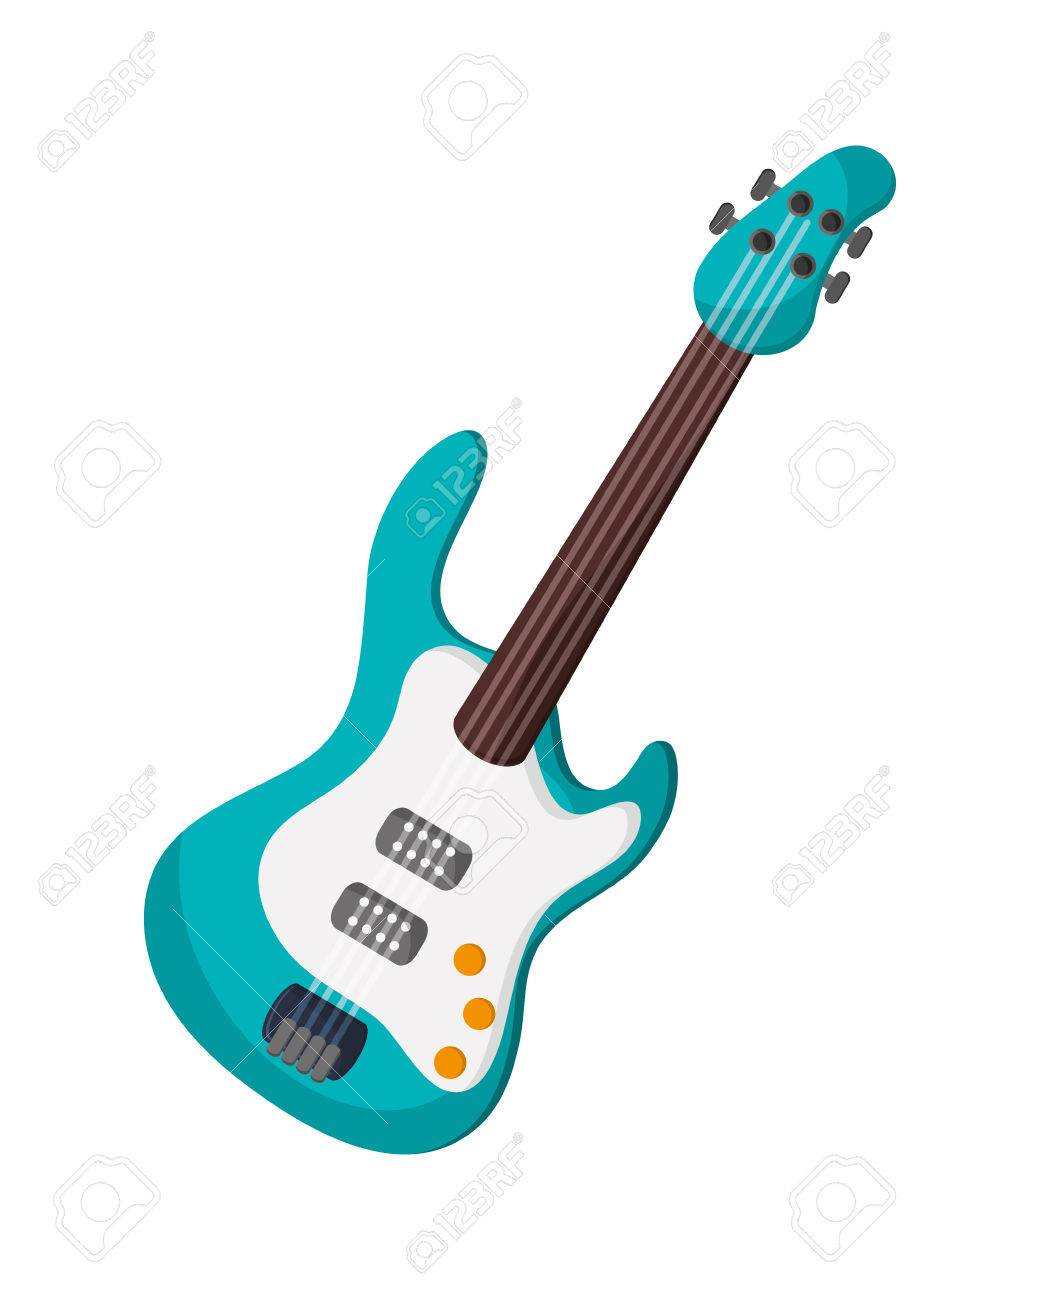 Flat Design Electric Guitar Icon Vector Illustration Royalty Free